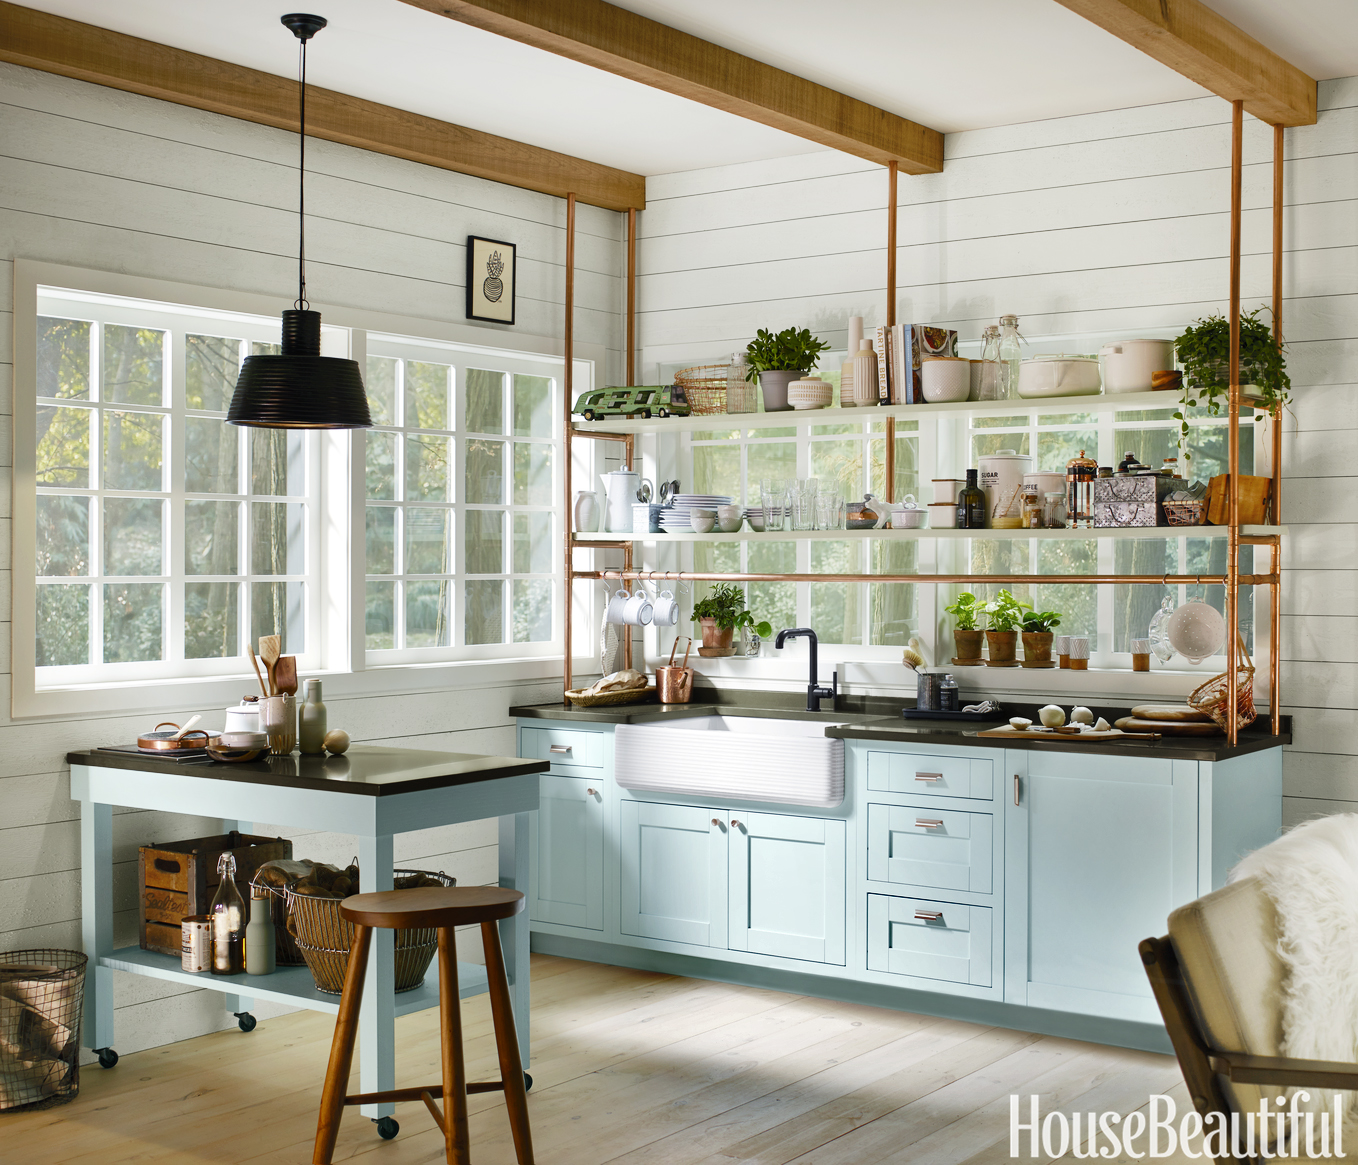 Effective Ways Of Decorating A Small Kitchen